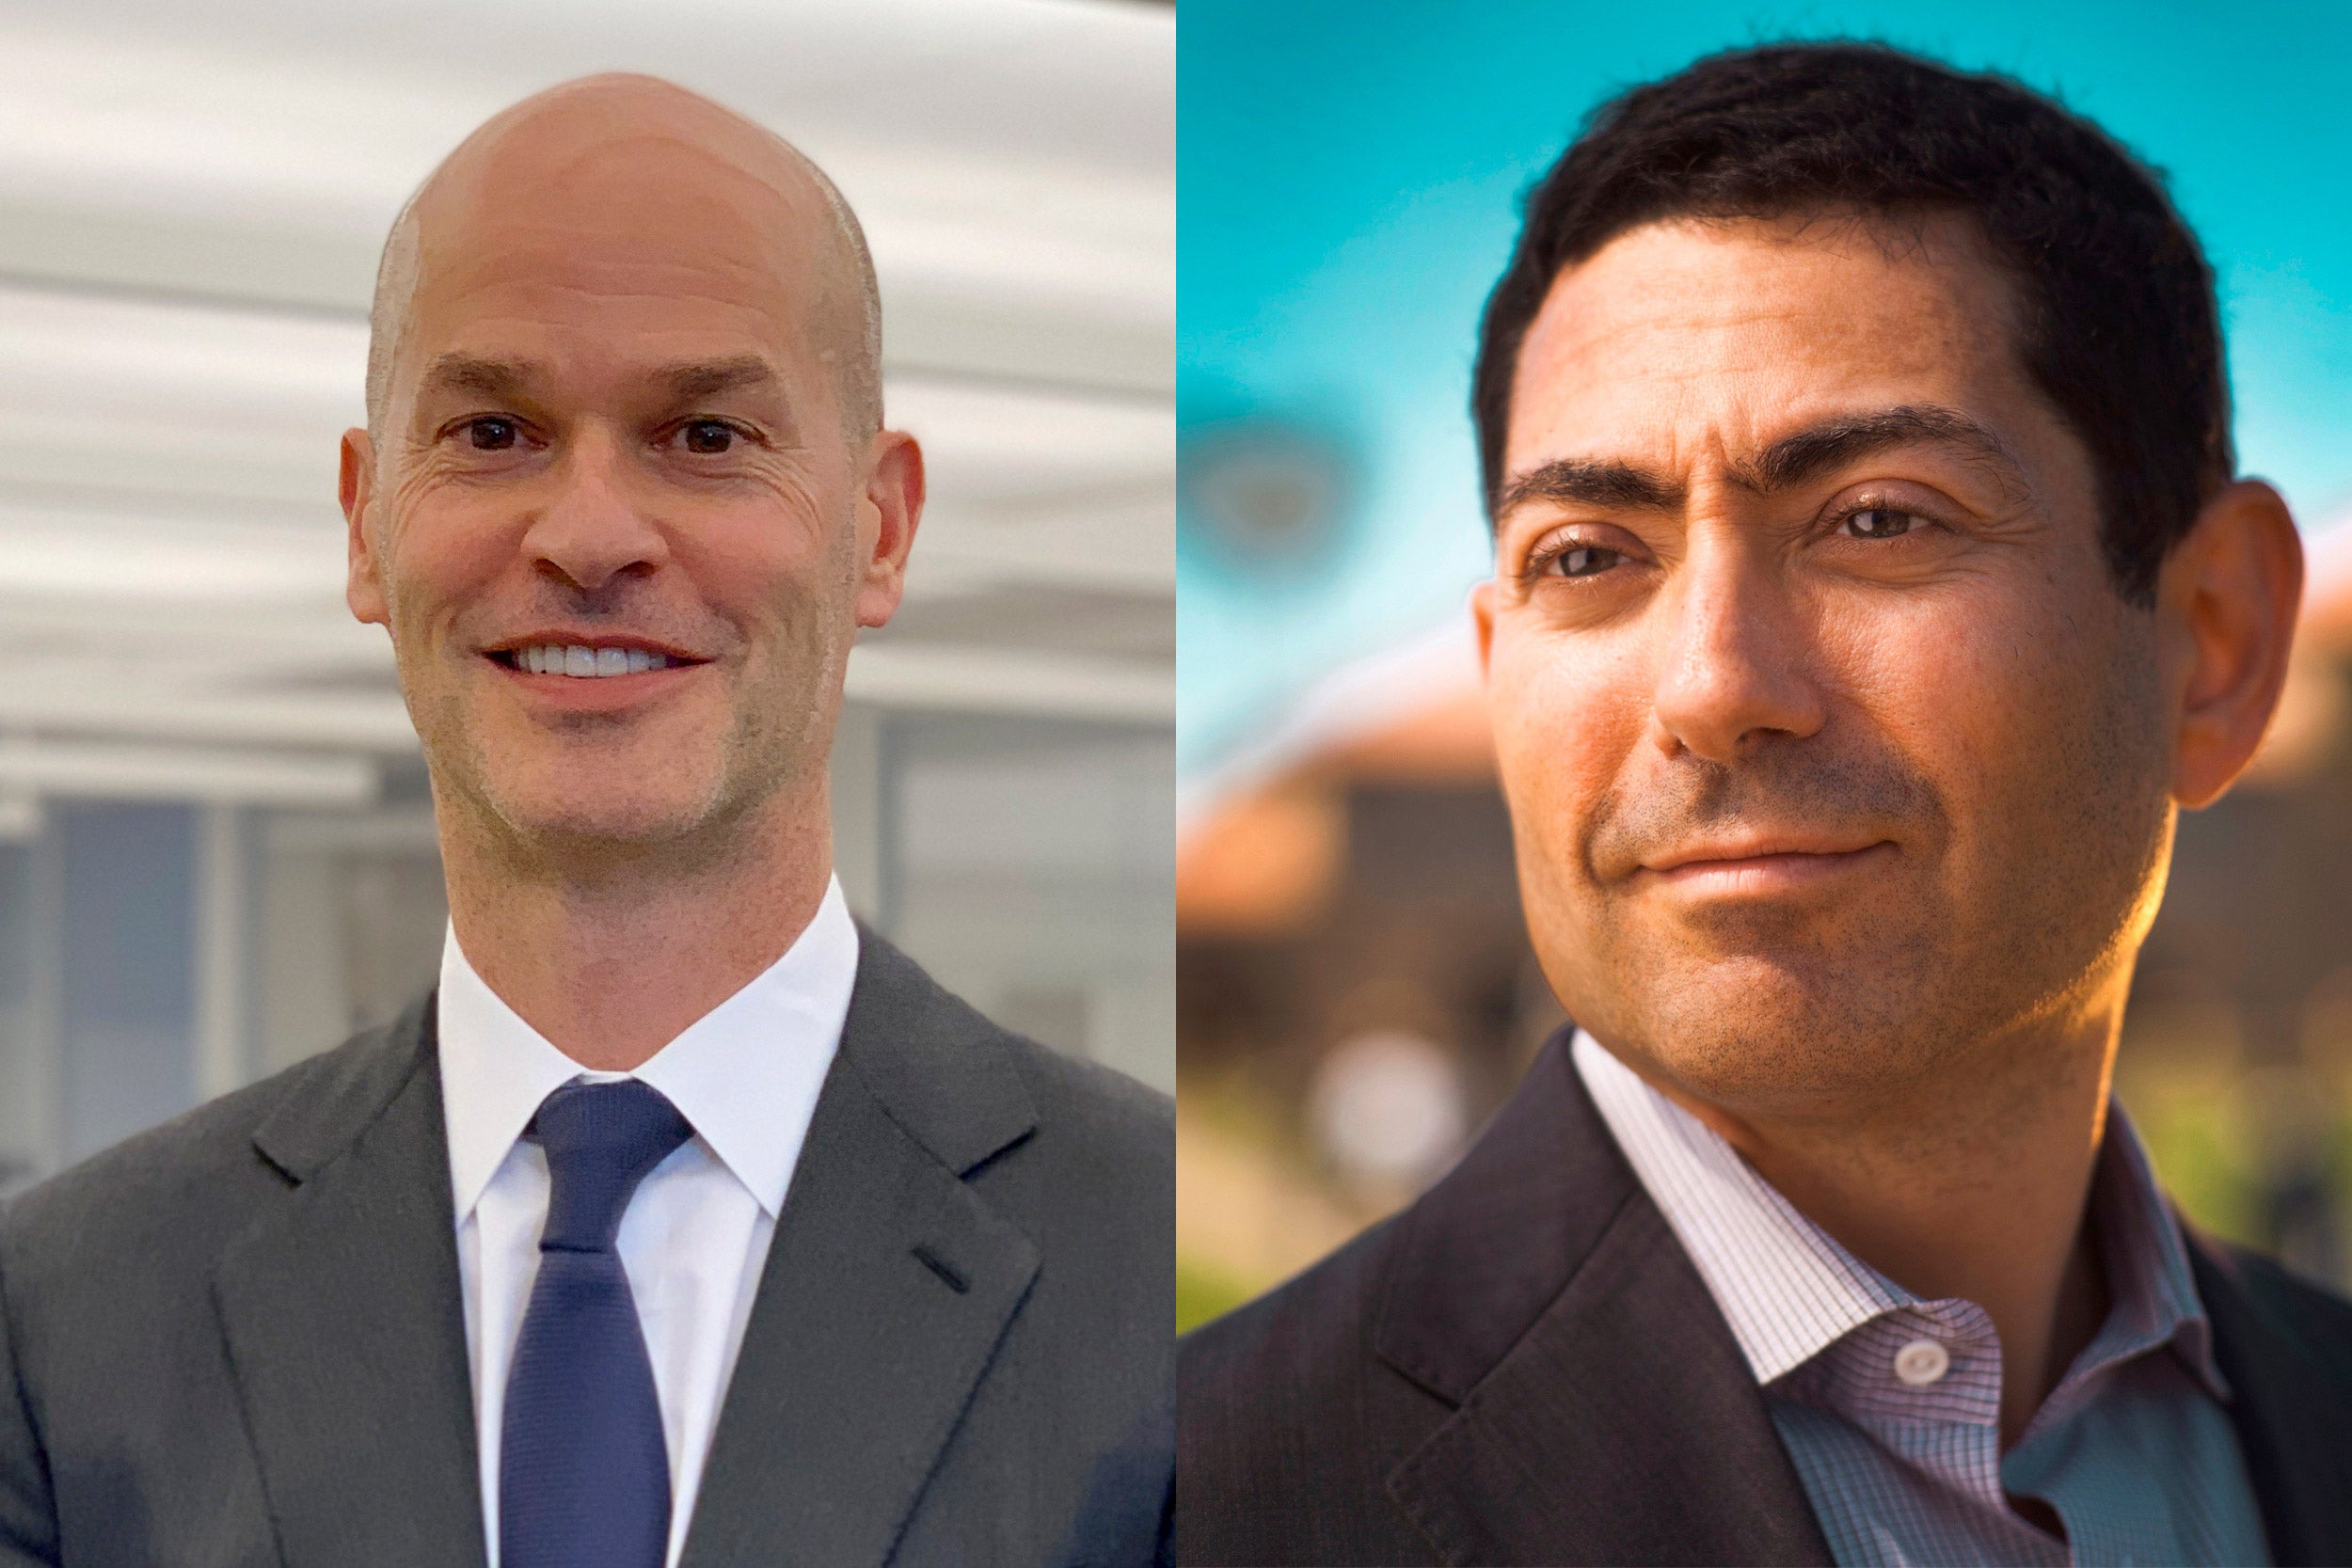 Timothy R. Barakett '87, M.B.A. '93 (left), and Mariano-Florentino (Tino) Cuéllar '93 will assume their roles as the newest members of the Harvard Corporation on July 1.